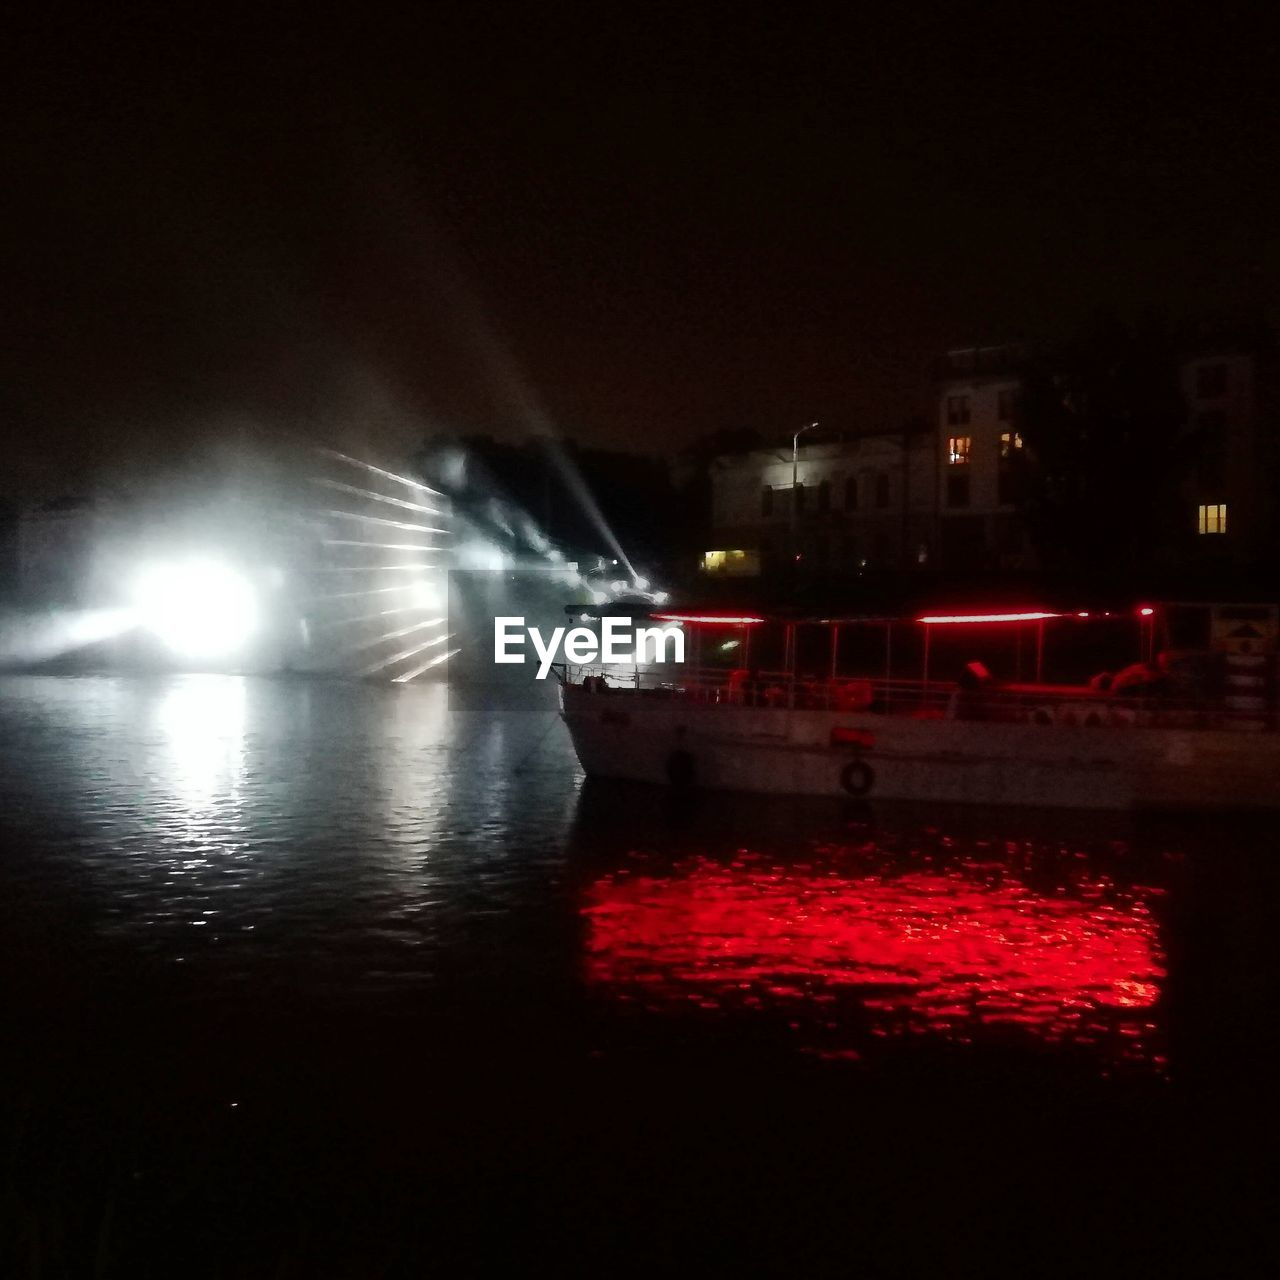 night, illuminated, water, transportation, architecture, mode of transportation, no people, red, motion, reflection, building exterior, nautical vessel, built structure, city, nature, street light, waterfront, lighting equipment, sky